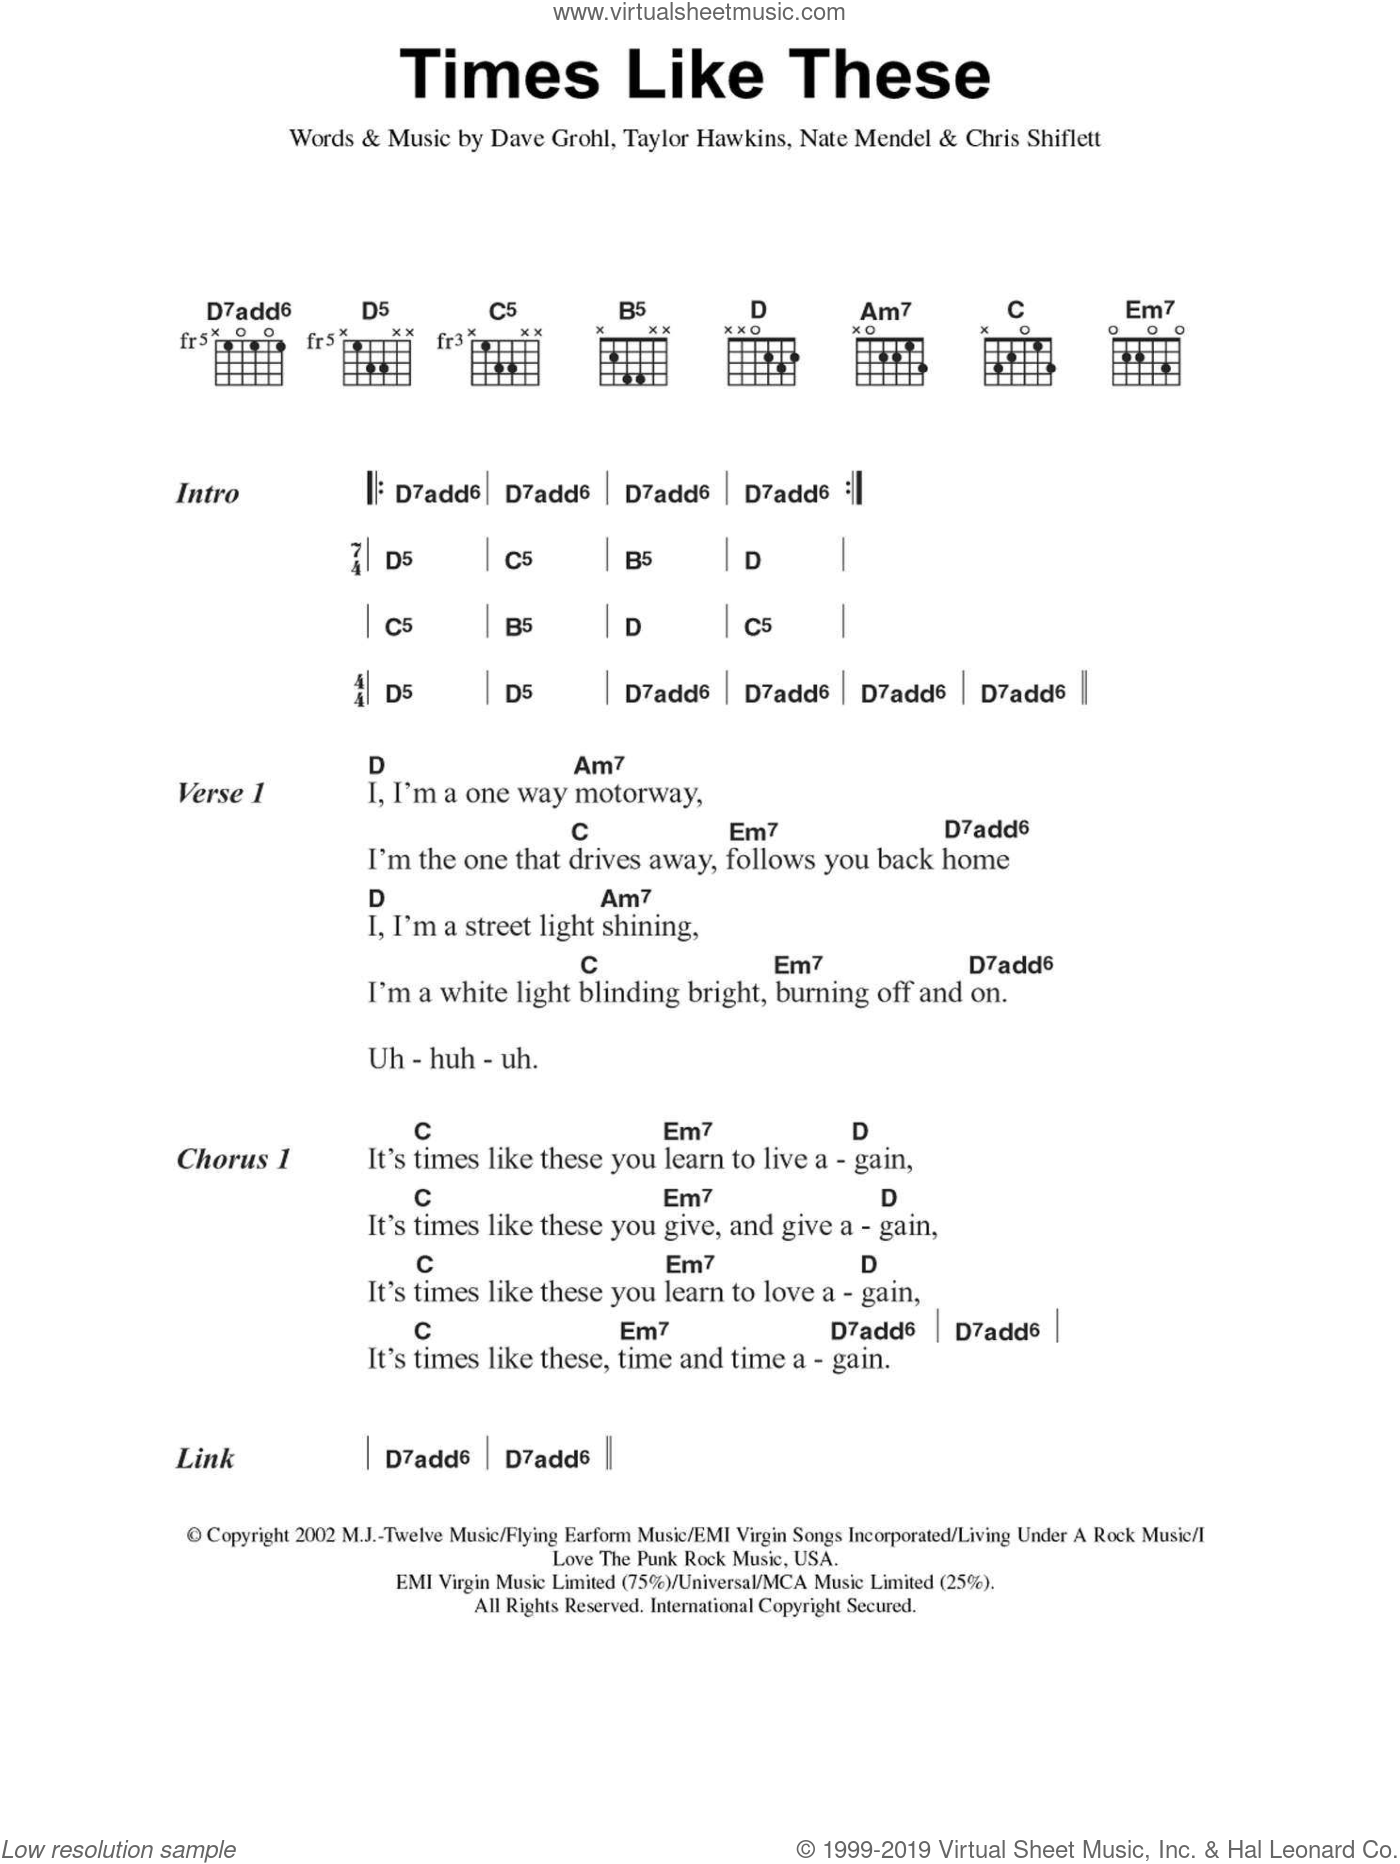 Times Like These sheet music for guitar (chords, lyrics, melody) by Chris Shiflett